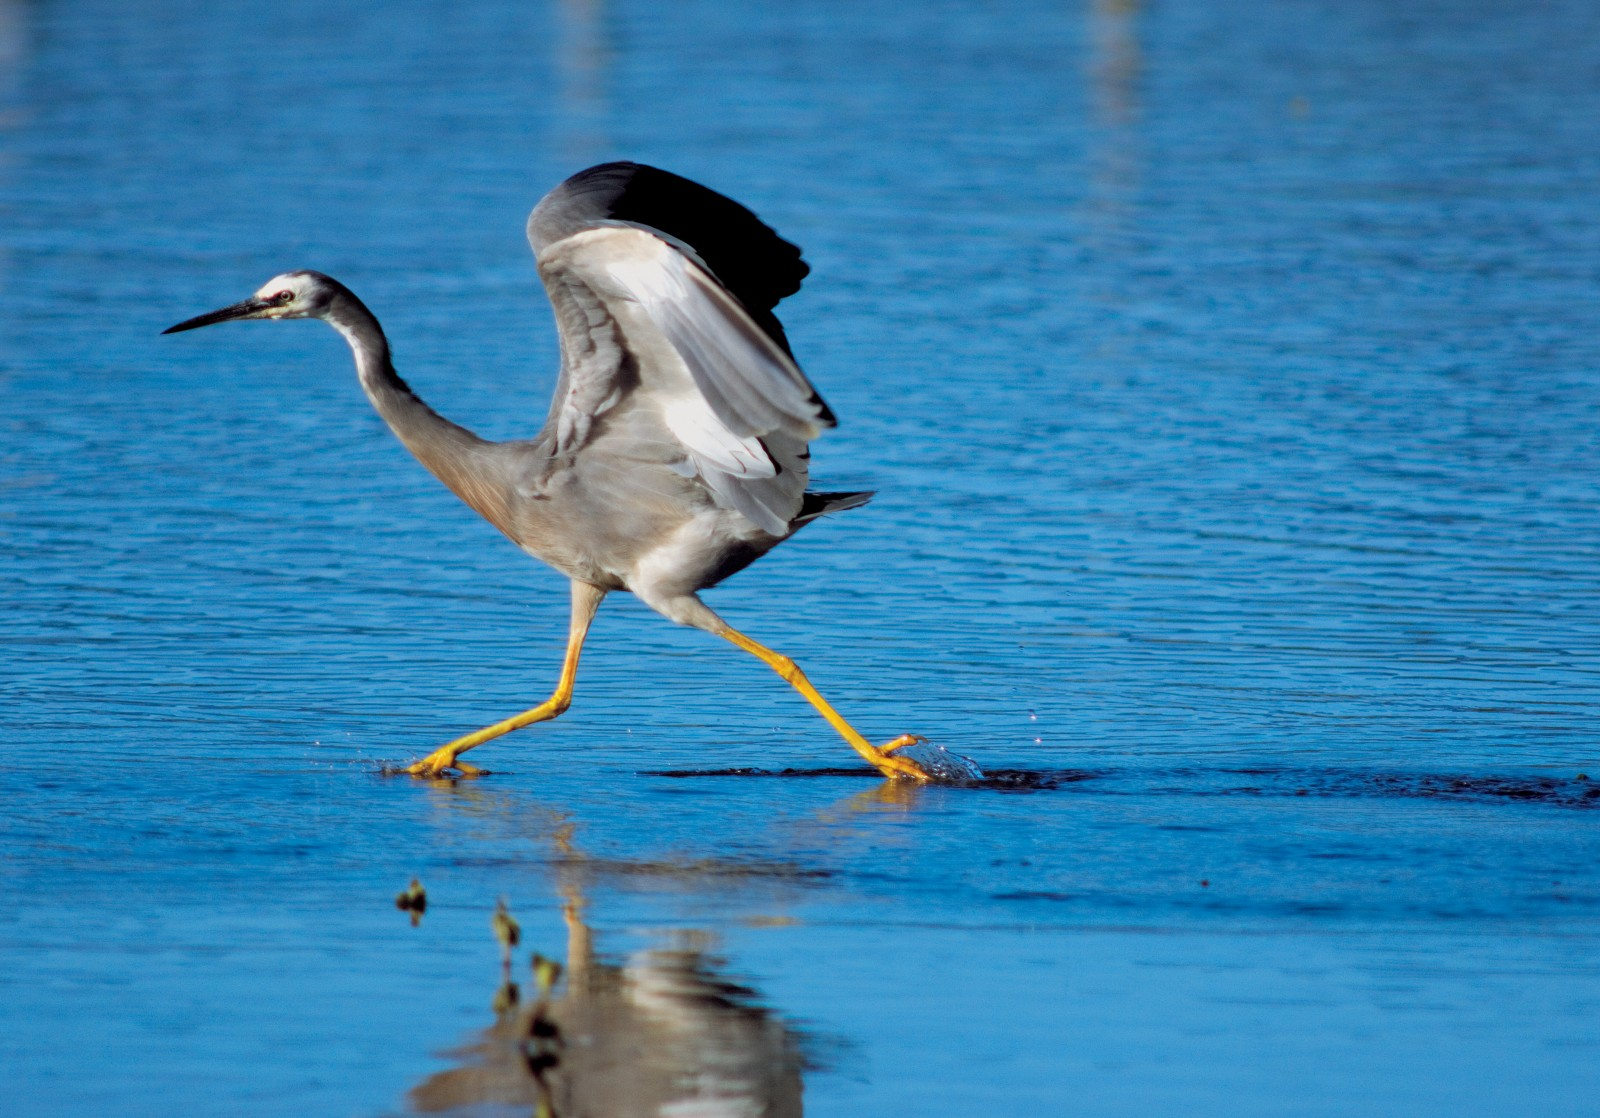 White-faced herons—a species that self-introduced and has only become common in New Zealand over the last 60 years—feed on small fish which they usually catch by stealthy waiting followed by a sharp lunge with the bill.